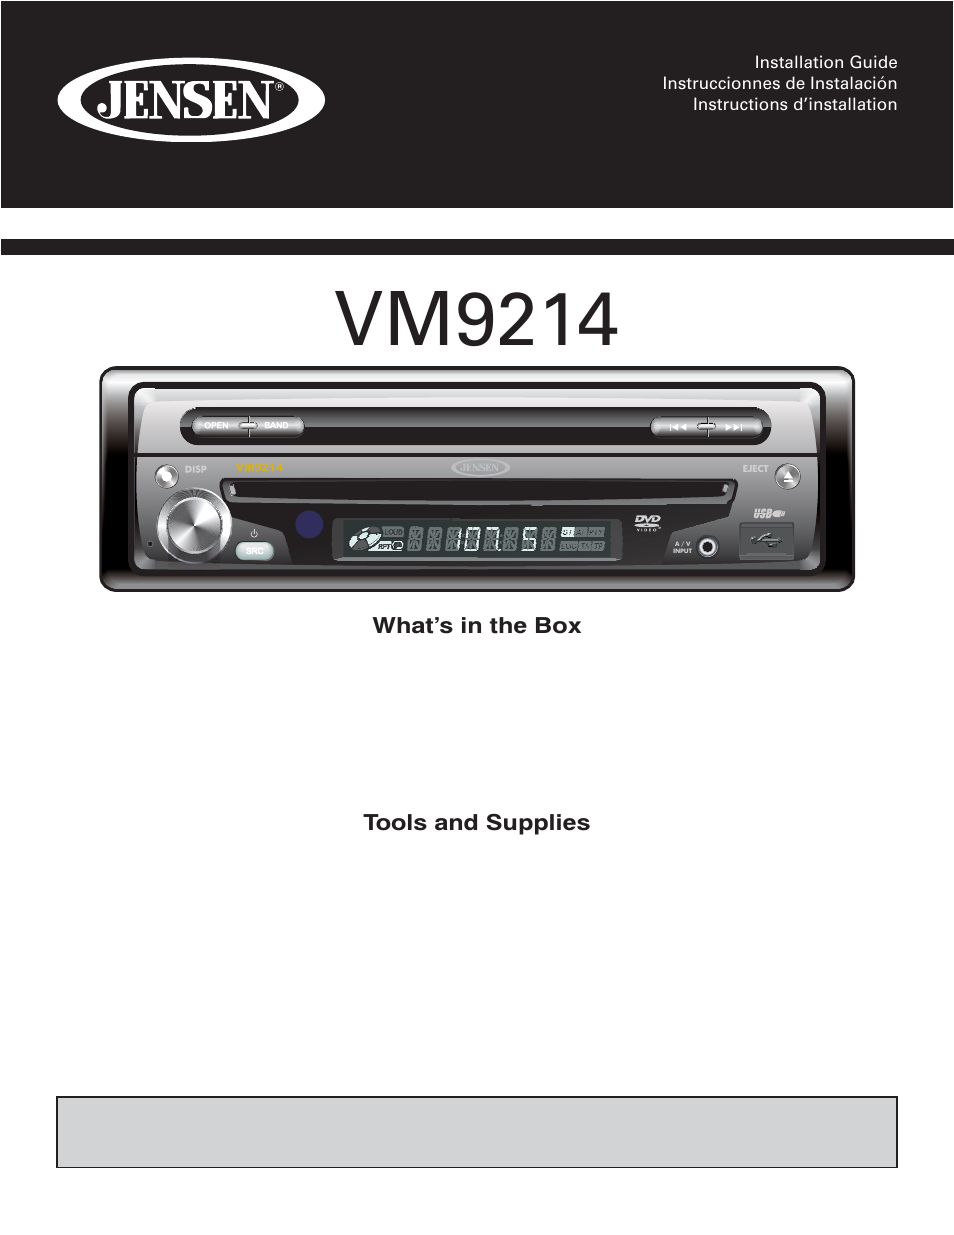 Jensen Vm9214 User Manual